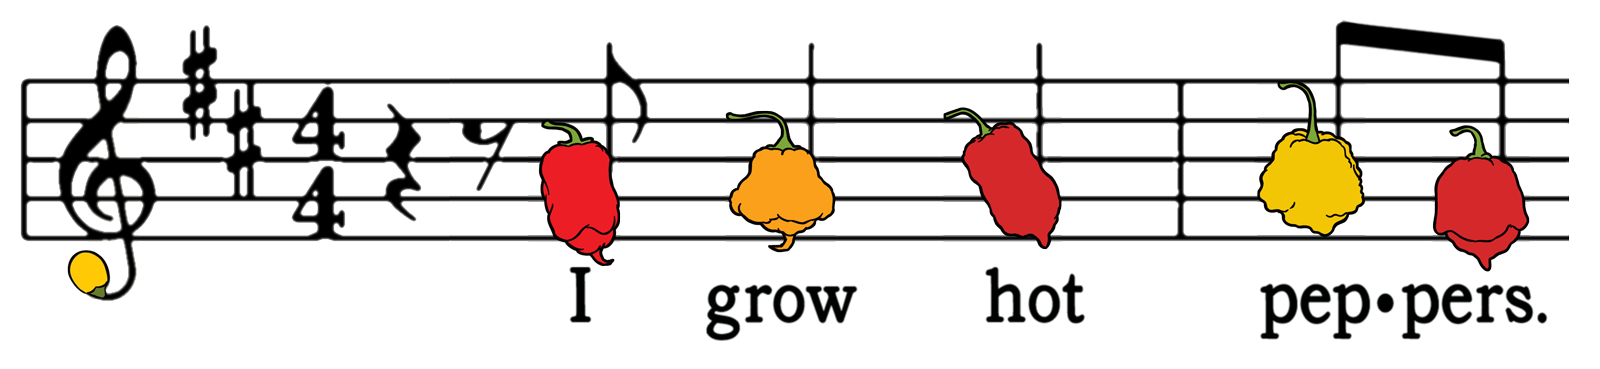 """Musical staff with hot peppers as notes. Below are the words """"I Grow Hot Peppers"""""""